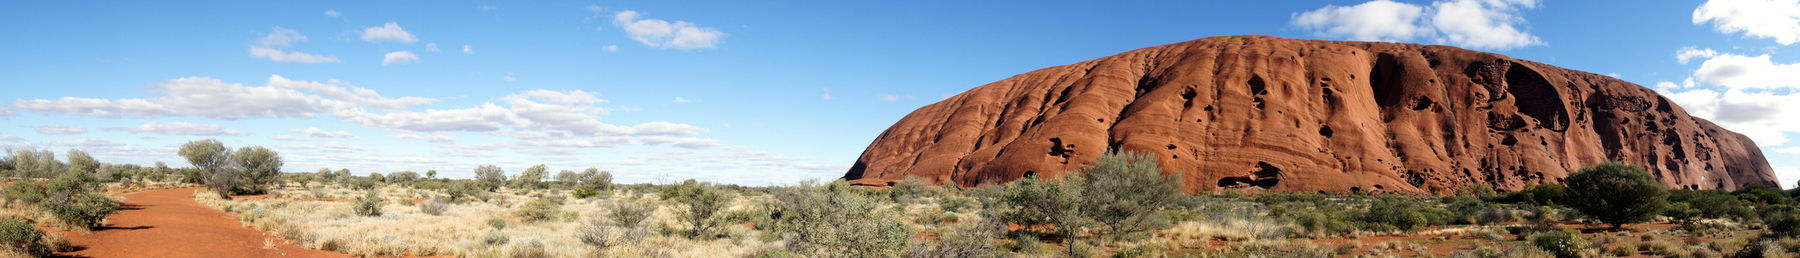 Red Centre banner Uluru Base Walk.jpg